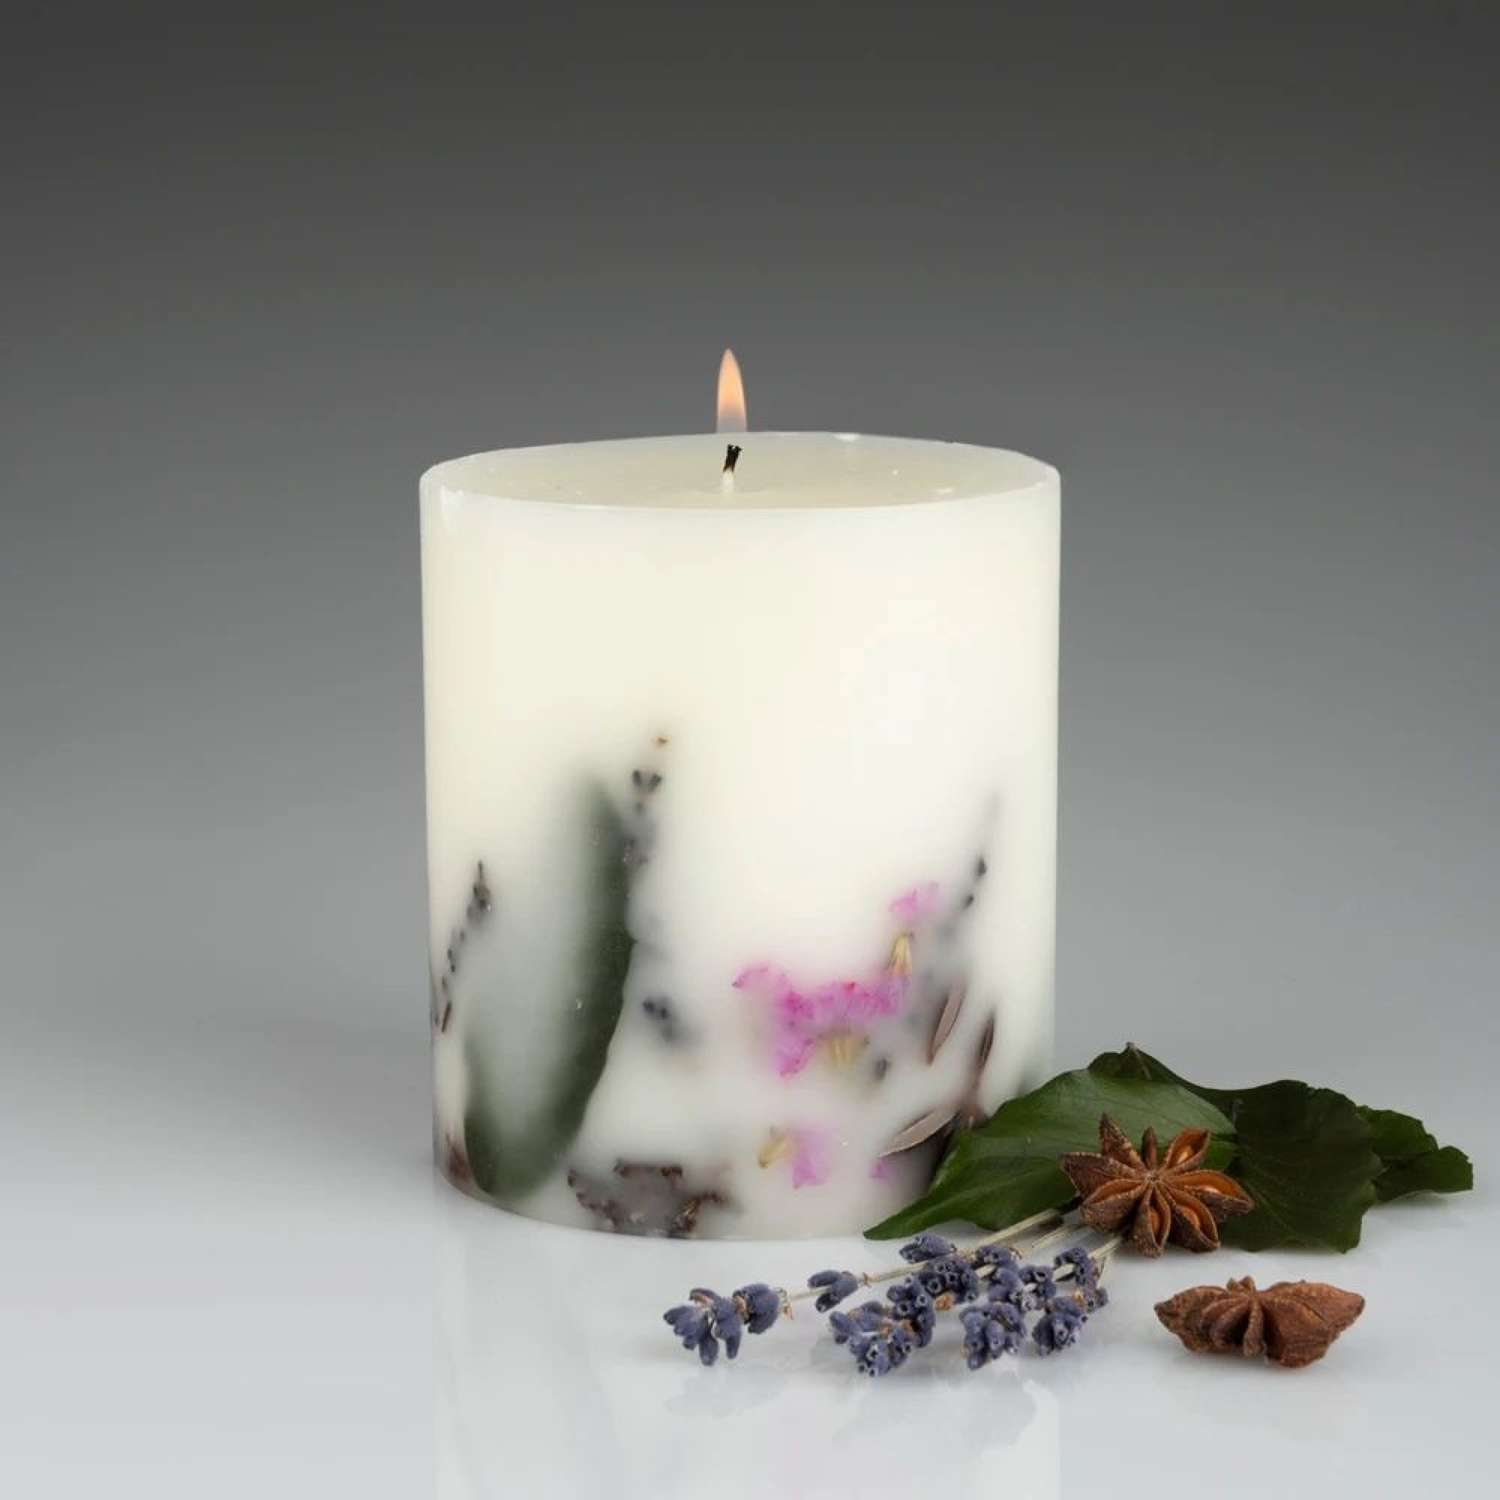 Sophie Allport - Honey Spiced Lavender Candle